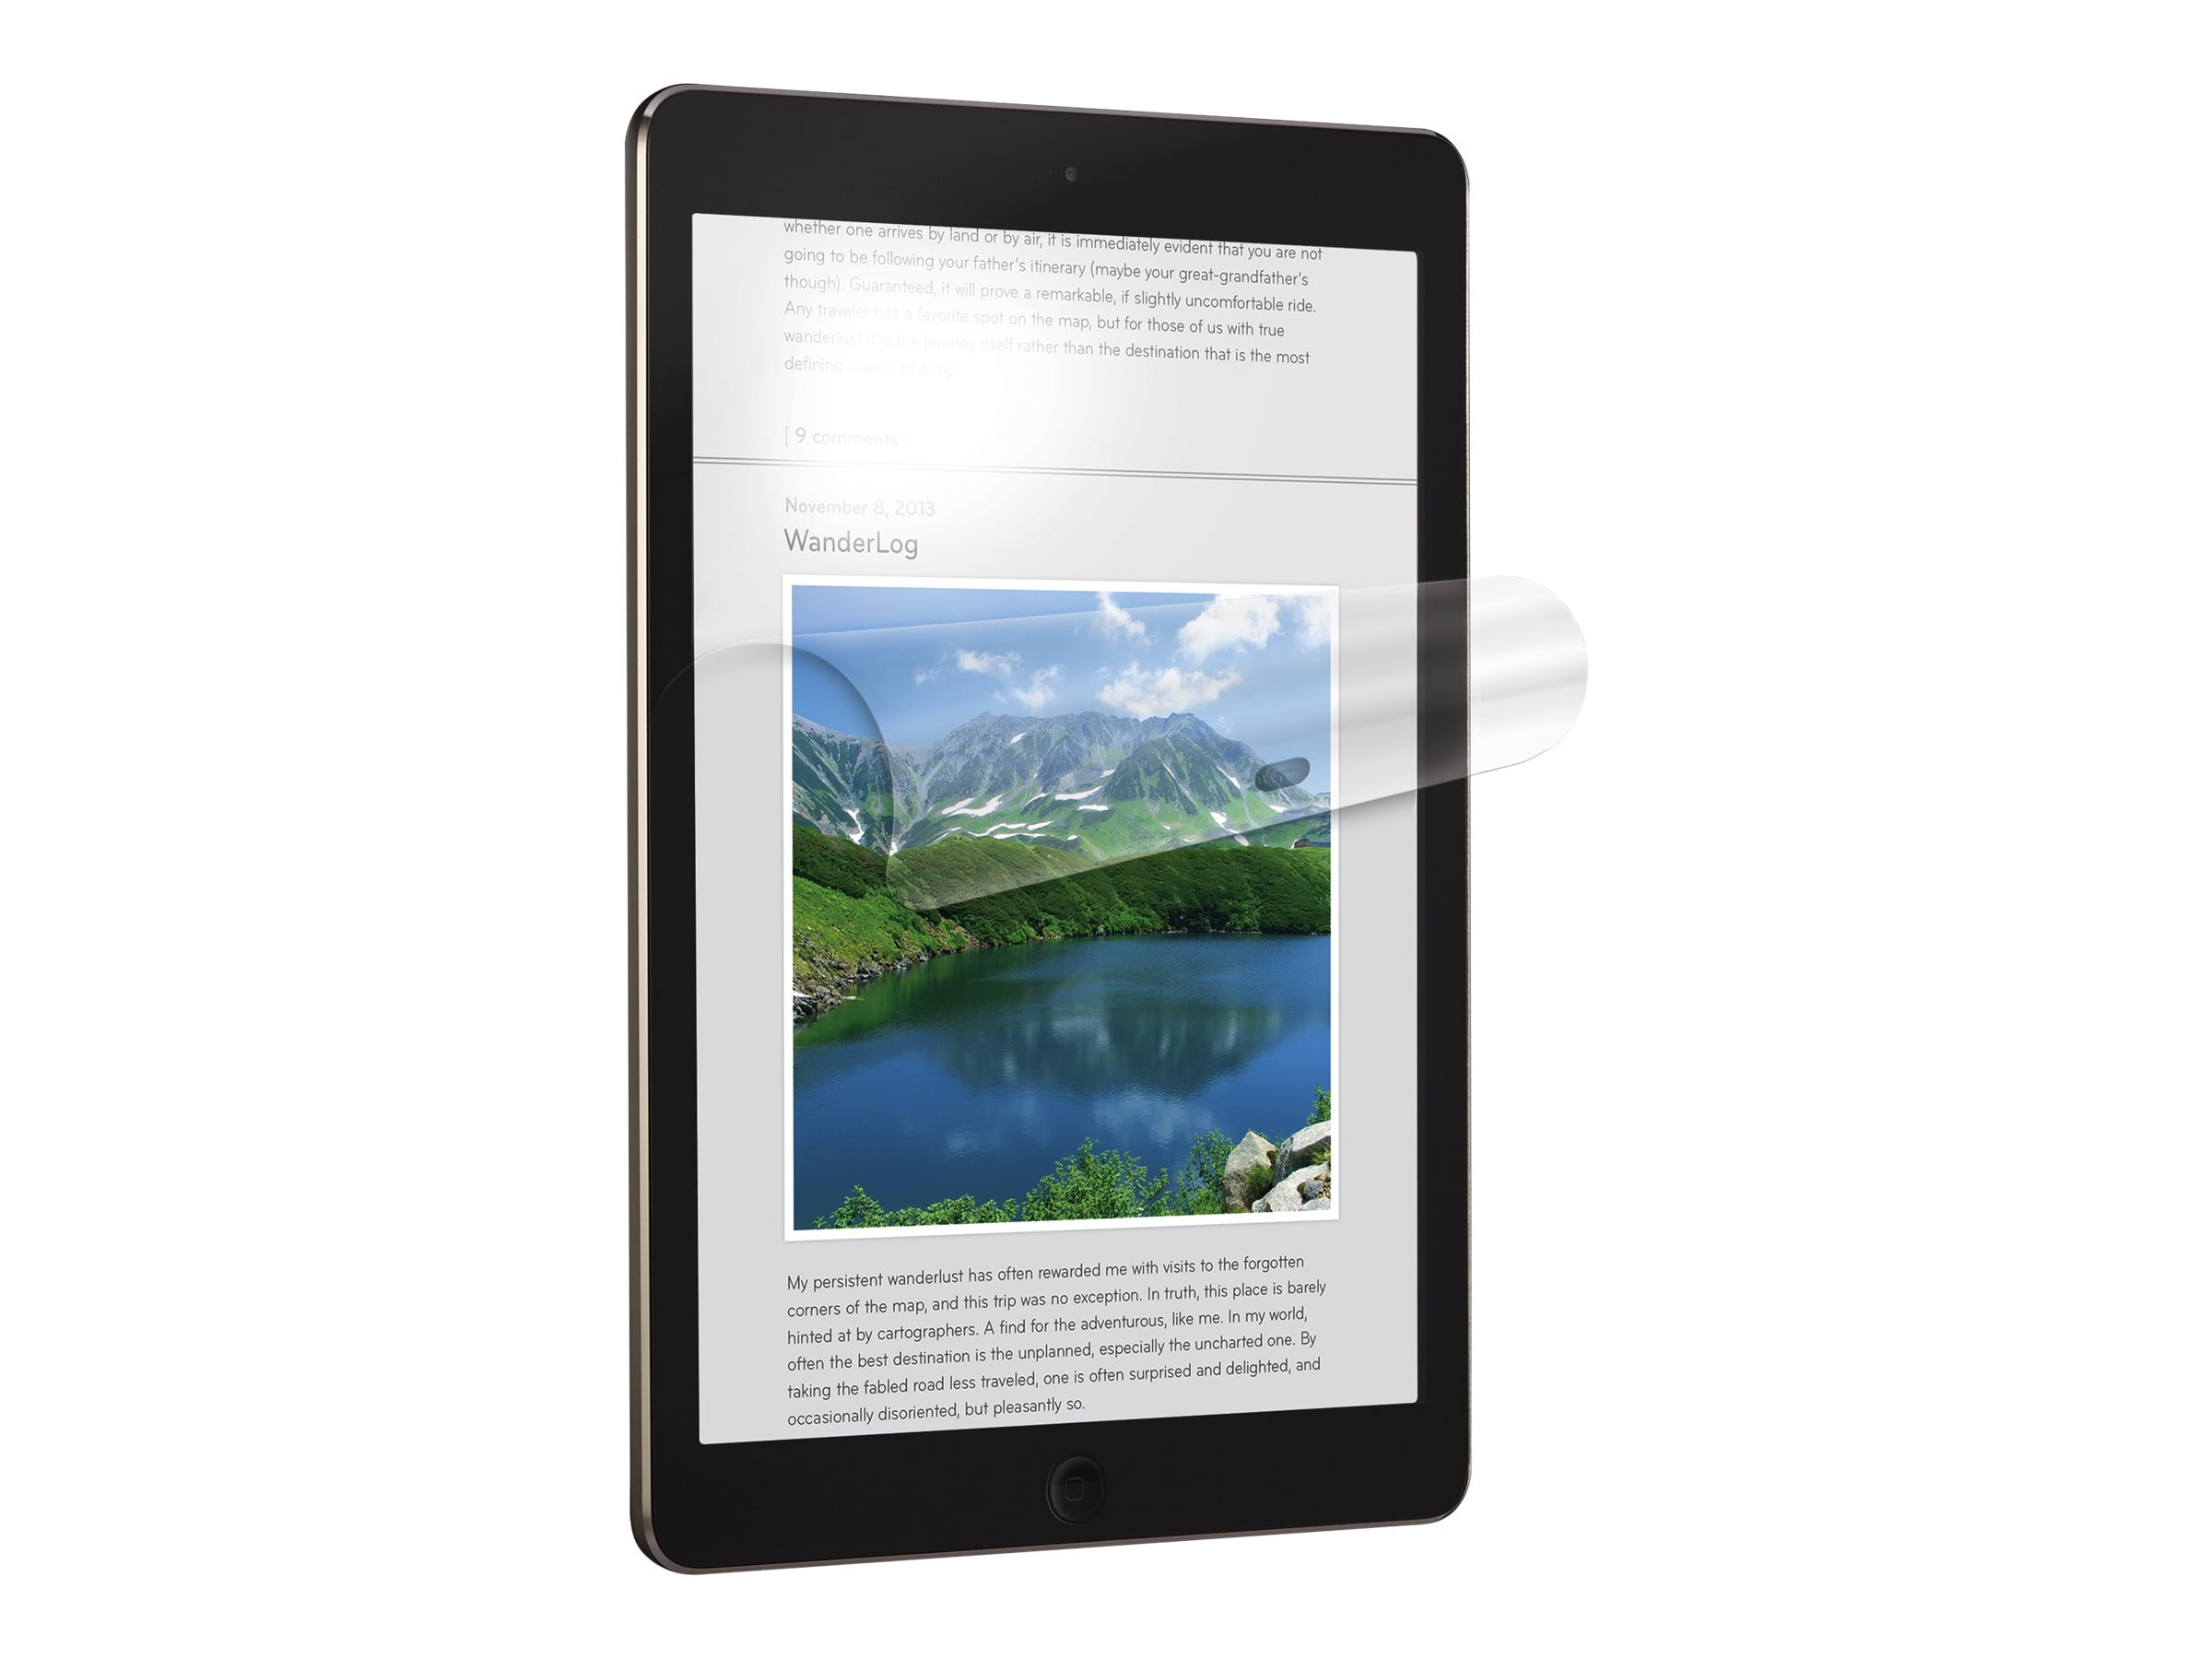 3M Anti-Glare Screen Protector for iPad Air, NVAG830864